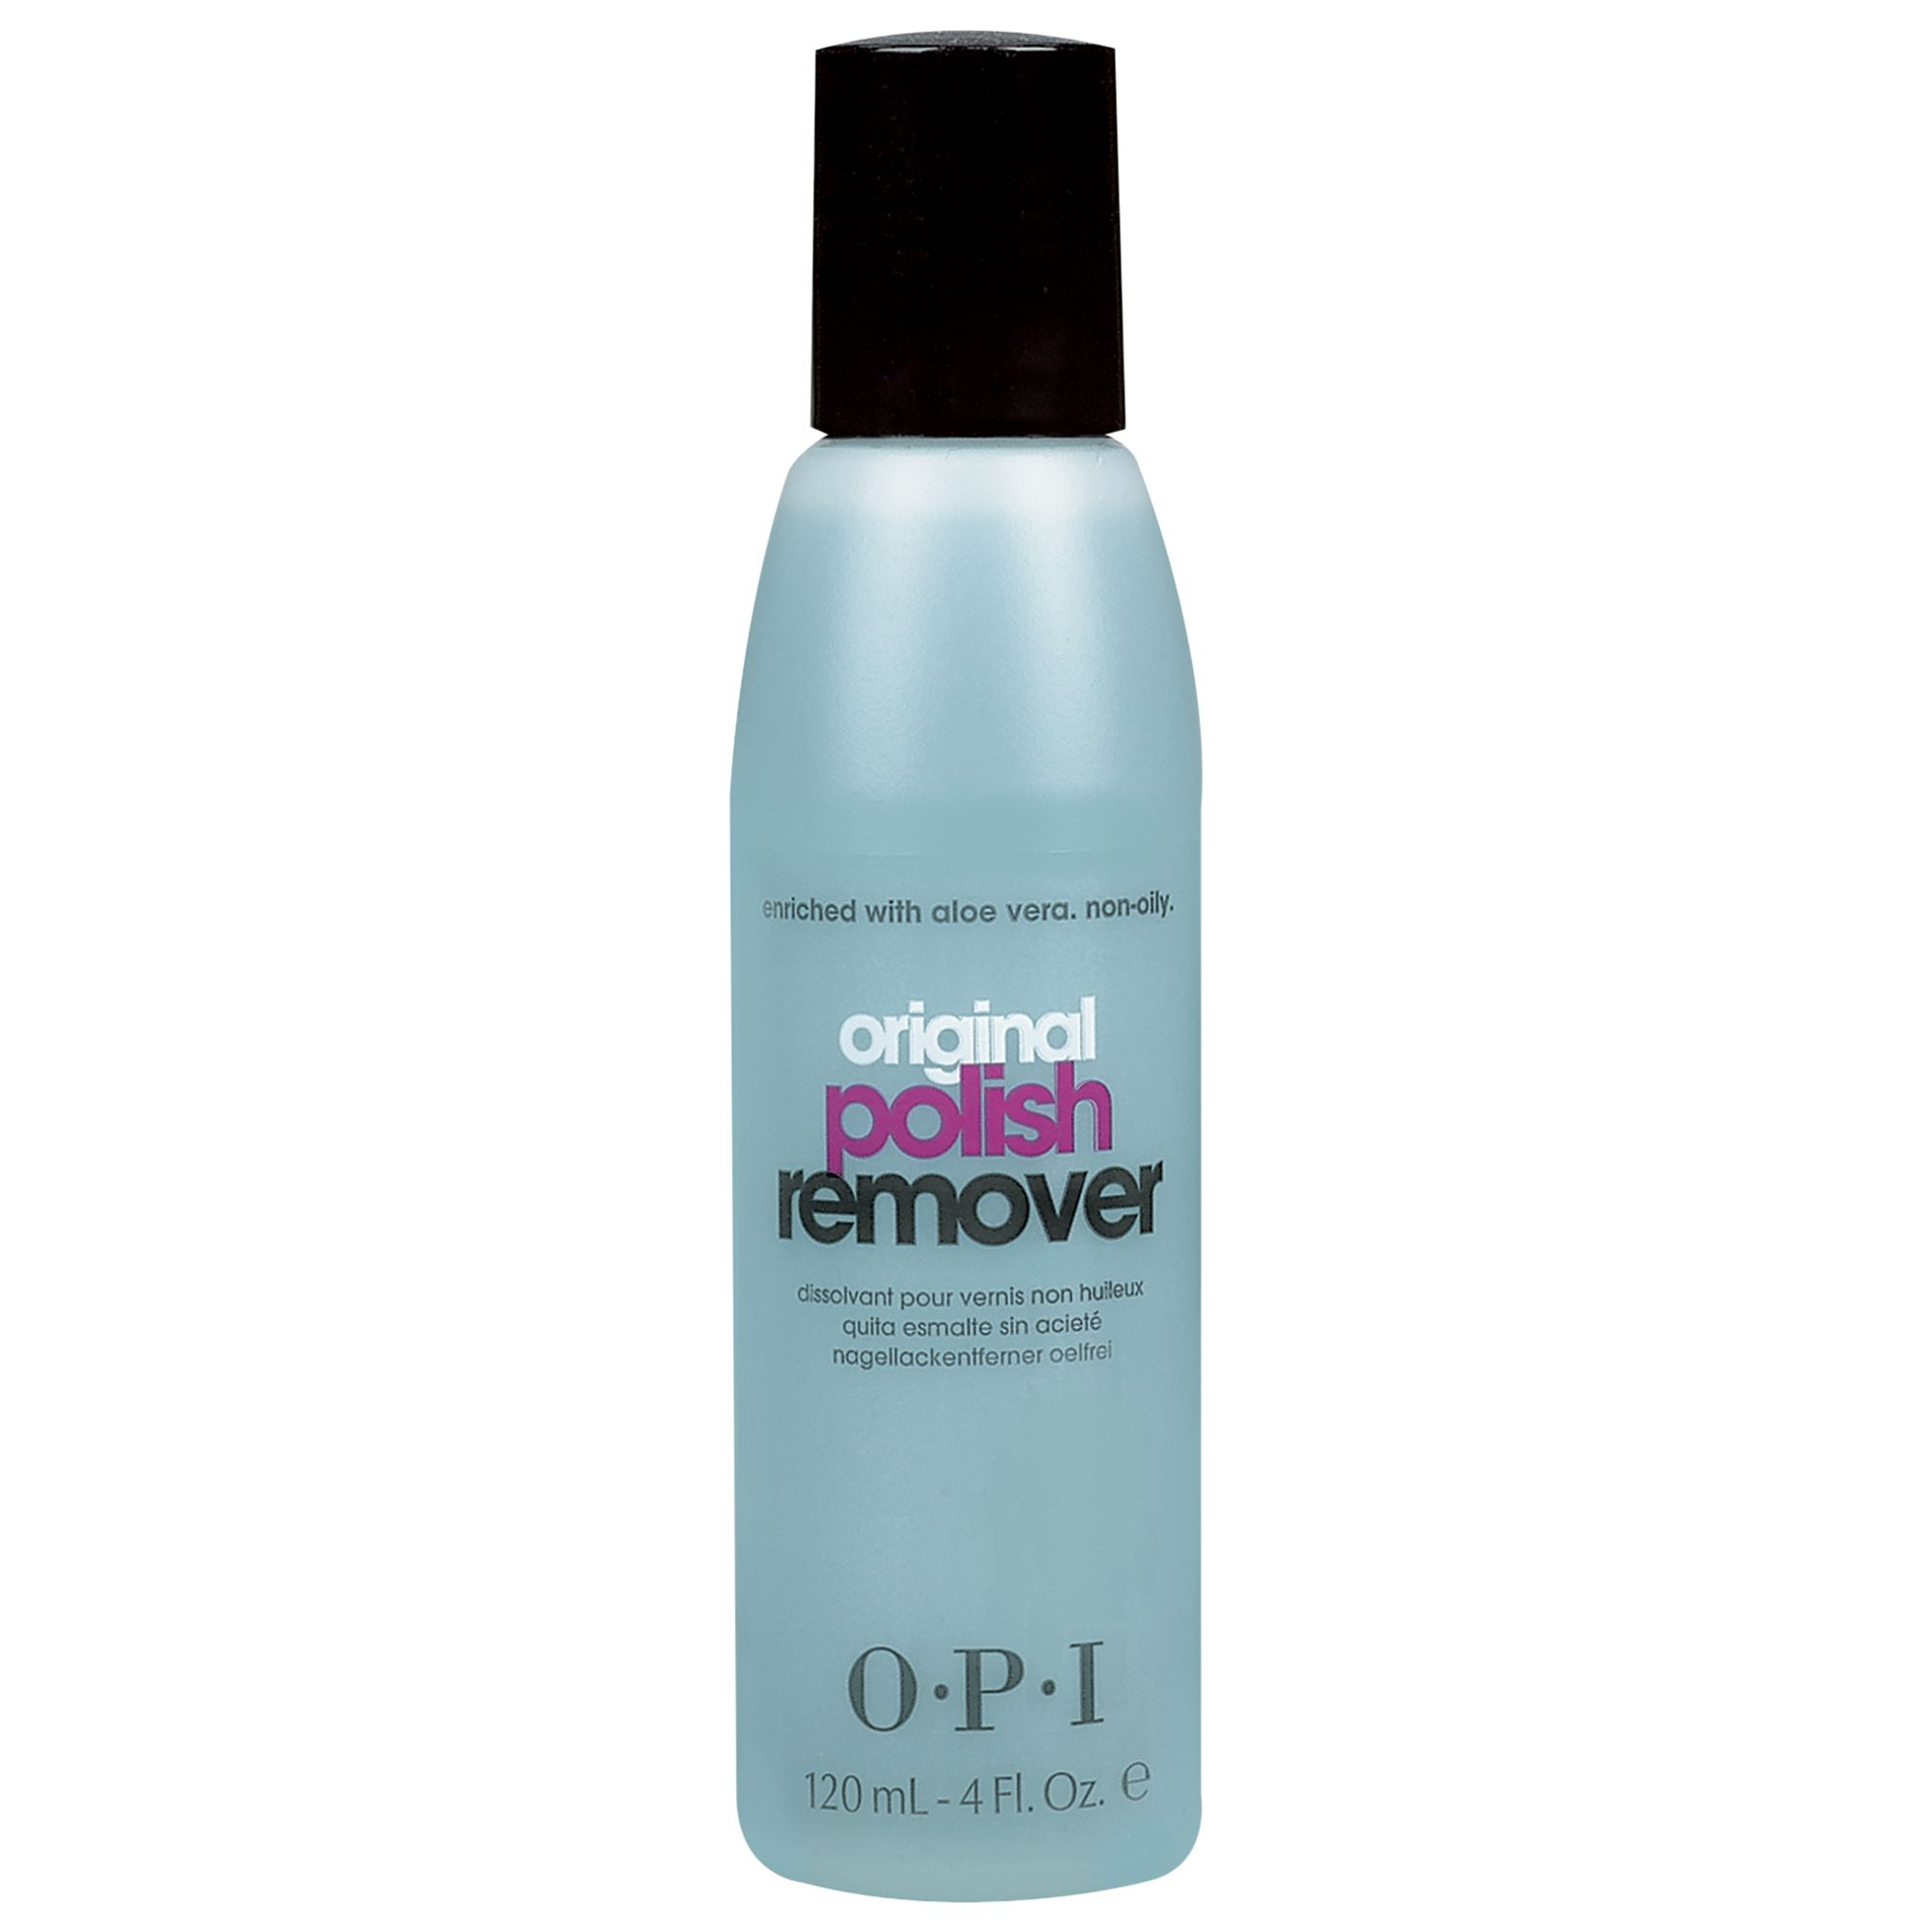 OPI OPI Original Polish Remover Enriched With Aloe Vera, 120ml